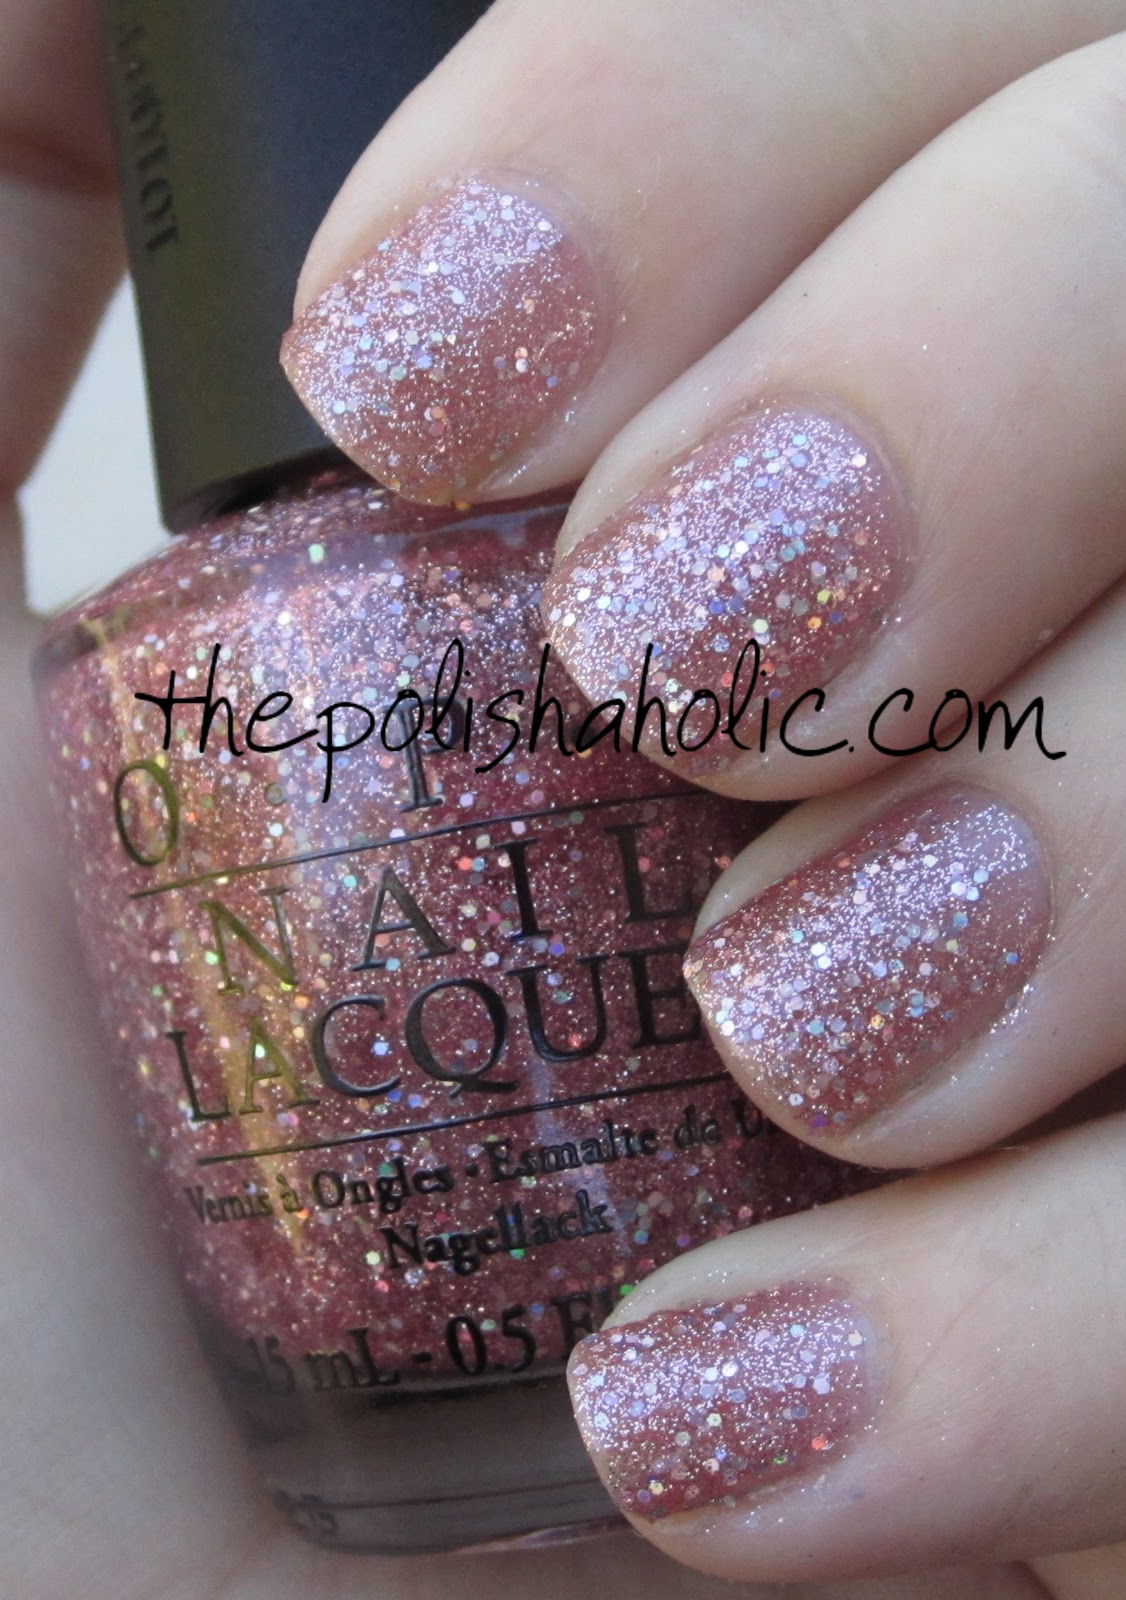 The PolishAholic: OPI Katy Perry Collection Swatches & Review